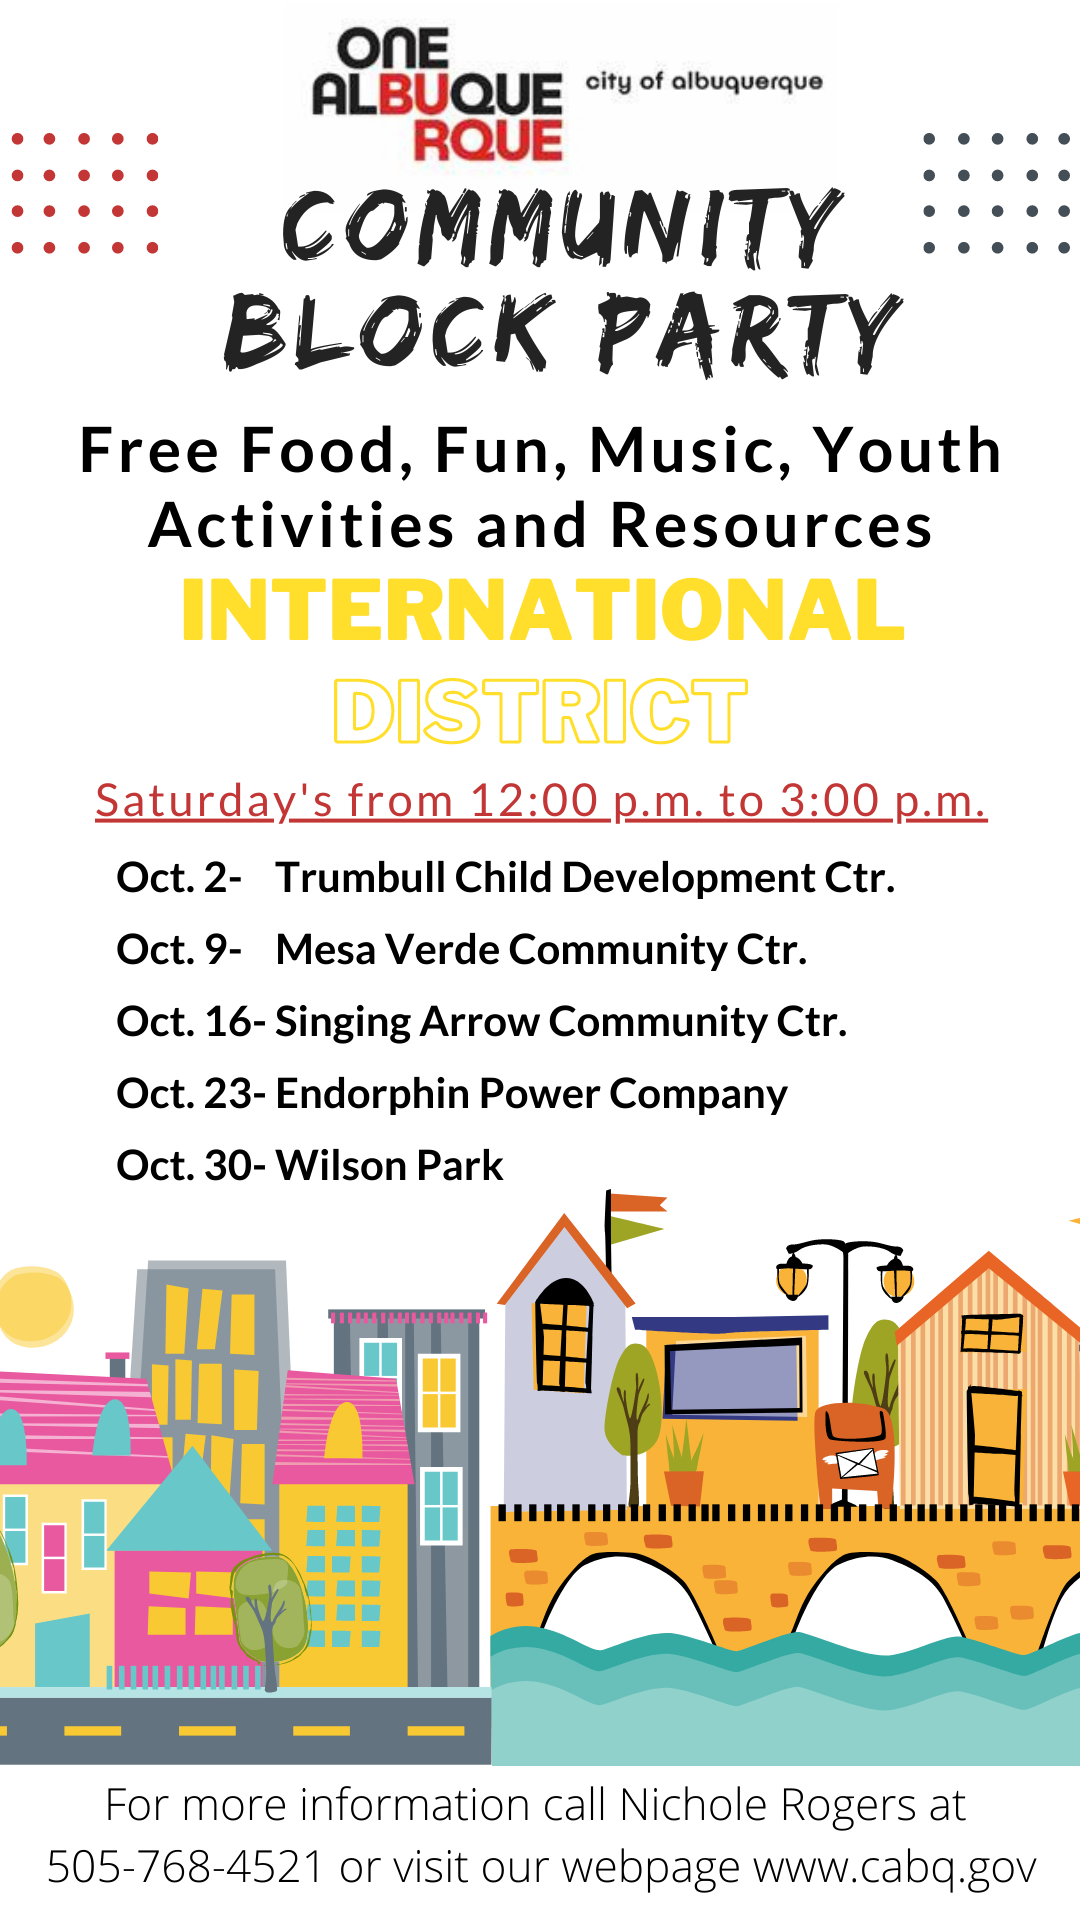 Community Block Party in the International District